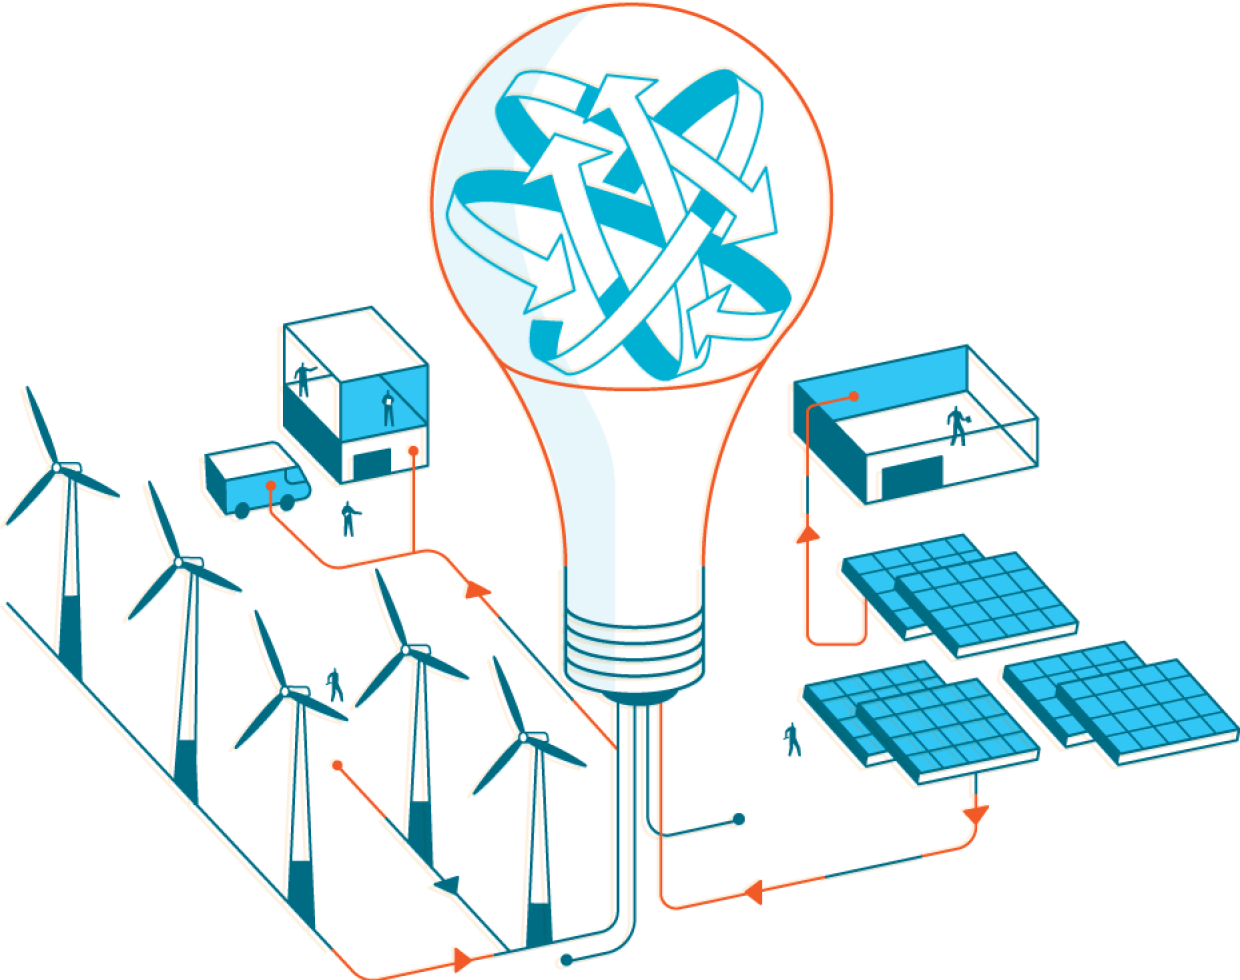 An illustration of renewable energy featuring images of solar panels, turbines and a lightbulb with renewable energy symbols.